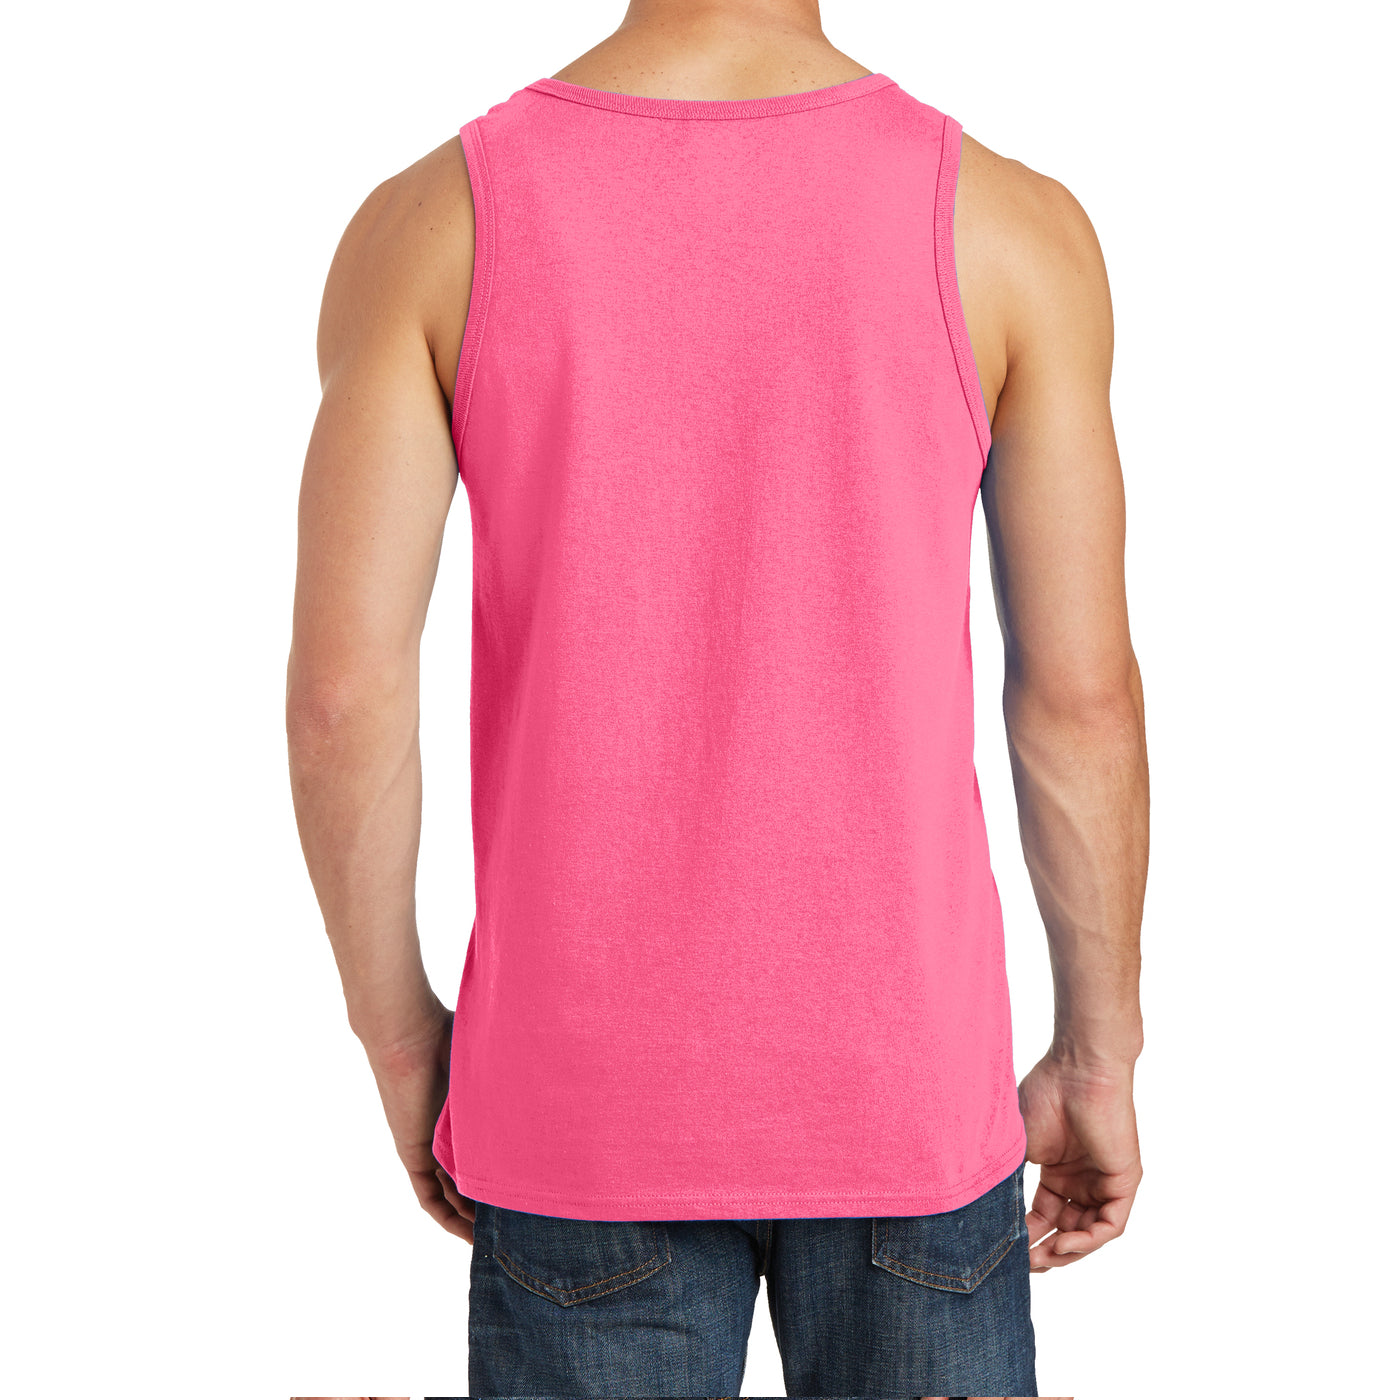 Men's Core Cotton Tank Top - Neon Pink - Back